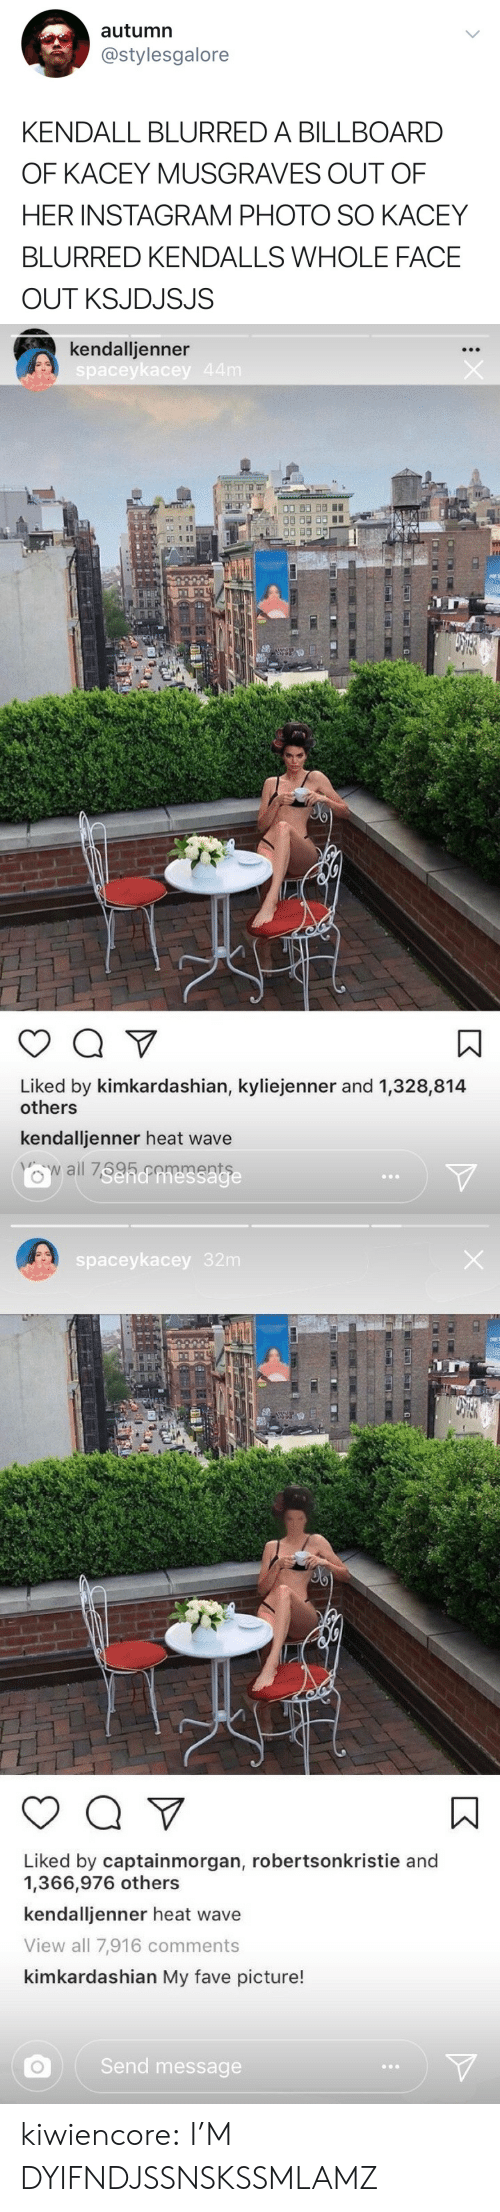 kendall: autumn  @stylesgalore  KENDALL BLURRED A BILLBOARD  OF KACEY MUSGRAVES OUT OF  HER INSTAGRAM PHOTO SO KACEY  BLURRED KENDALLS WHOLE FACE  OUT KSJDJSJS   kendalljenner  spaceykacey  Liked by kimkardashian, kyliejenner and 1,328,814  others  kendalljenner heat wave   spaceykacey 32m  Liked by captainmorgan, robertsonkristie and  1,366,976 others  kendalljenner heat wave  View all 7,916 comments  kimkardashian My fave picture!  Send message kiwiencore:  I'M DYIFNDJSSNSKSSMLAMZ